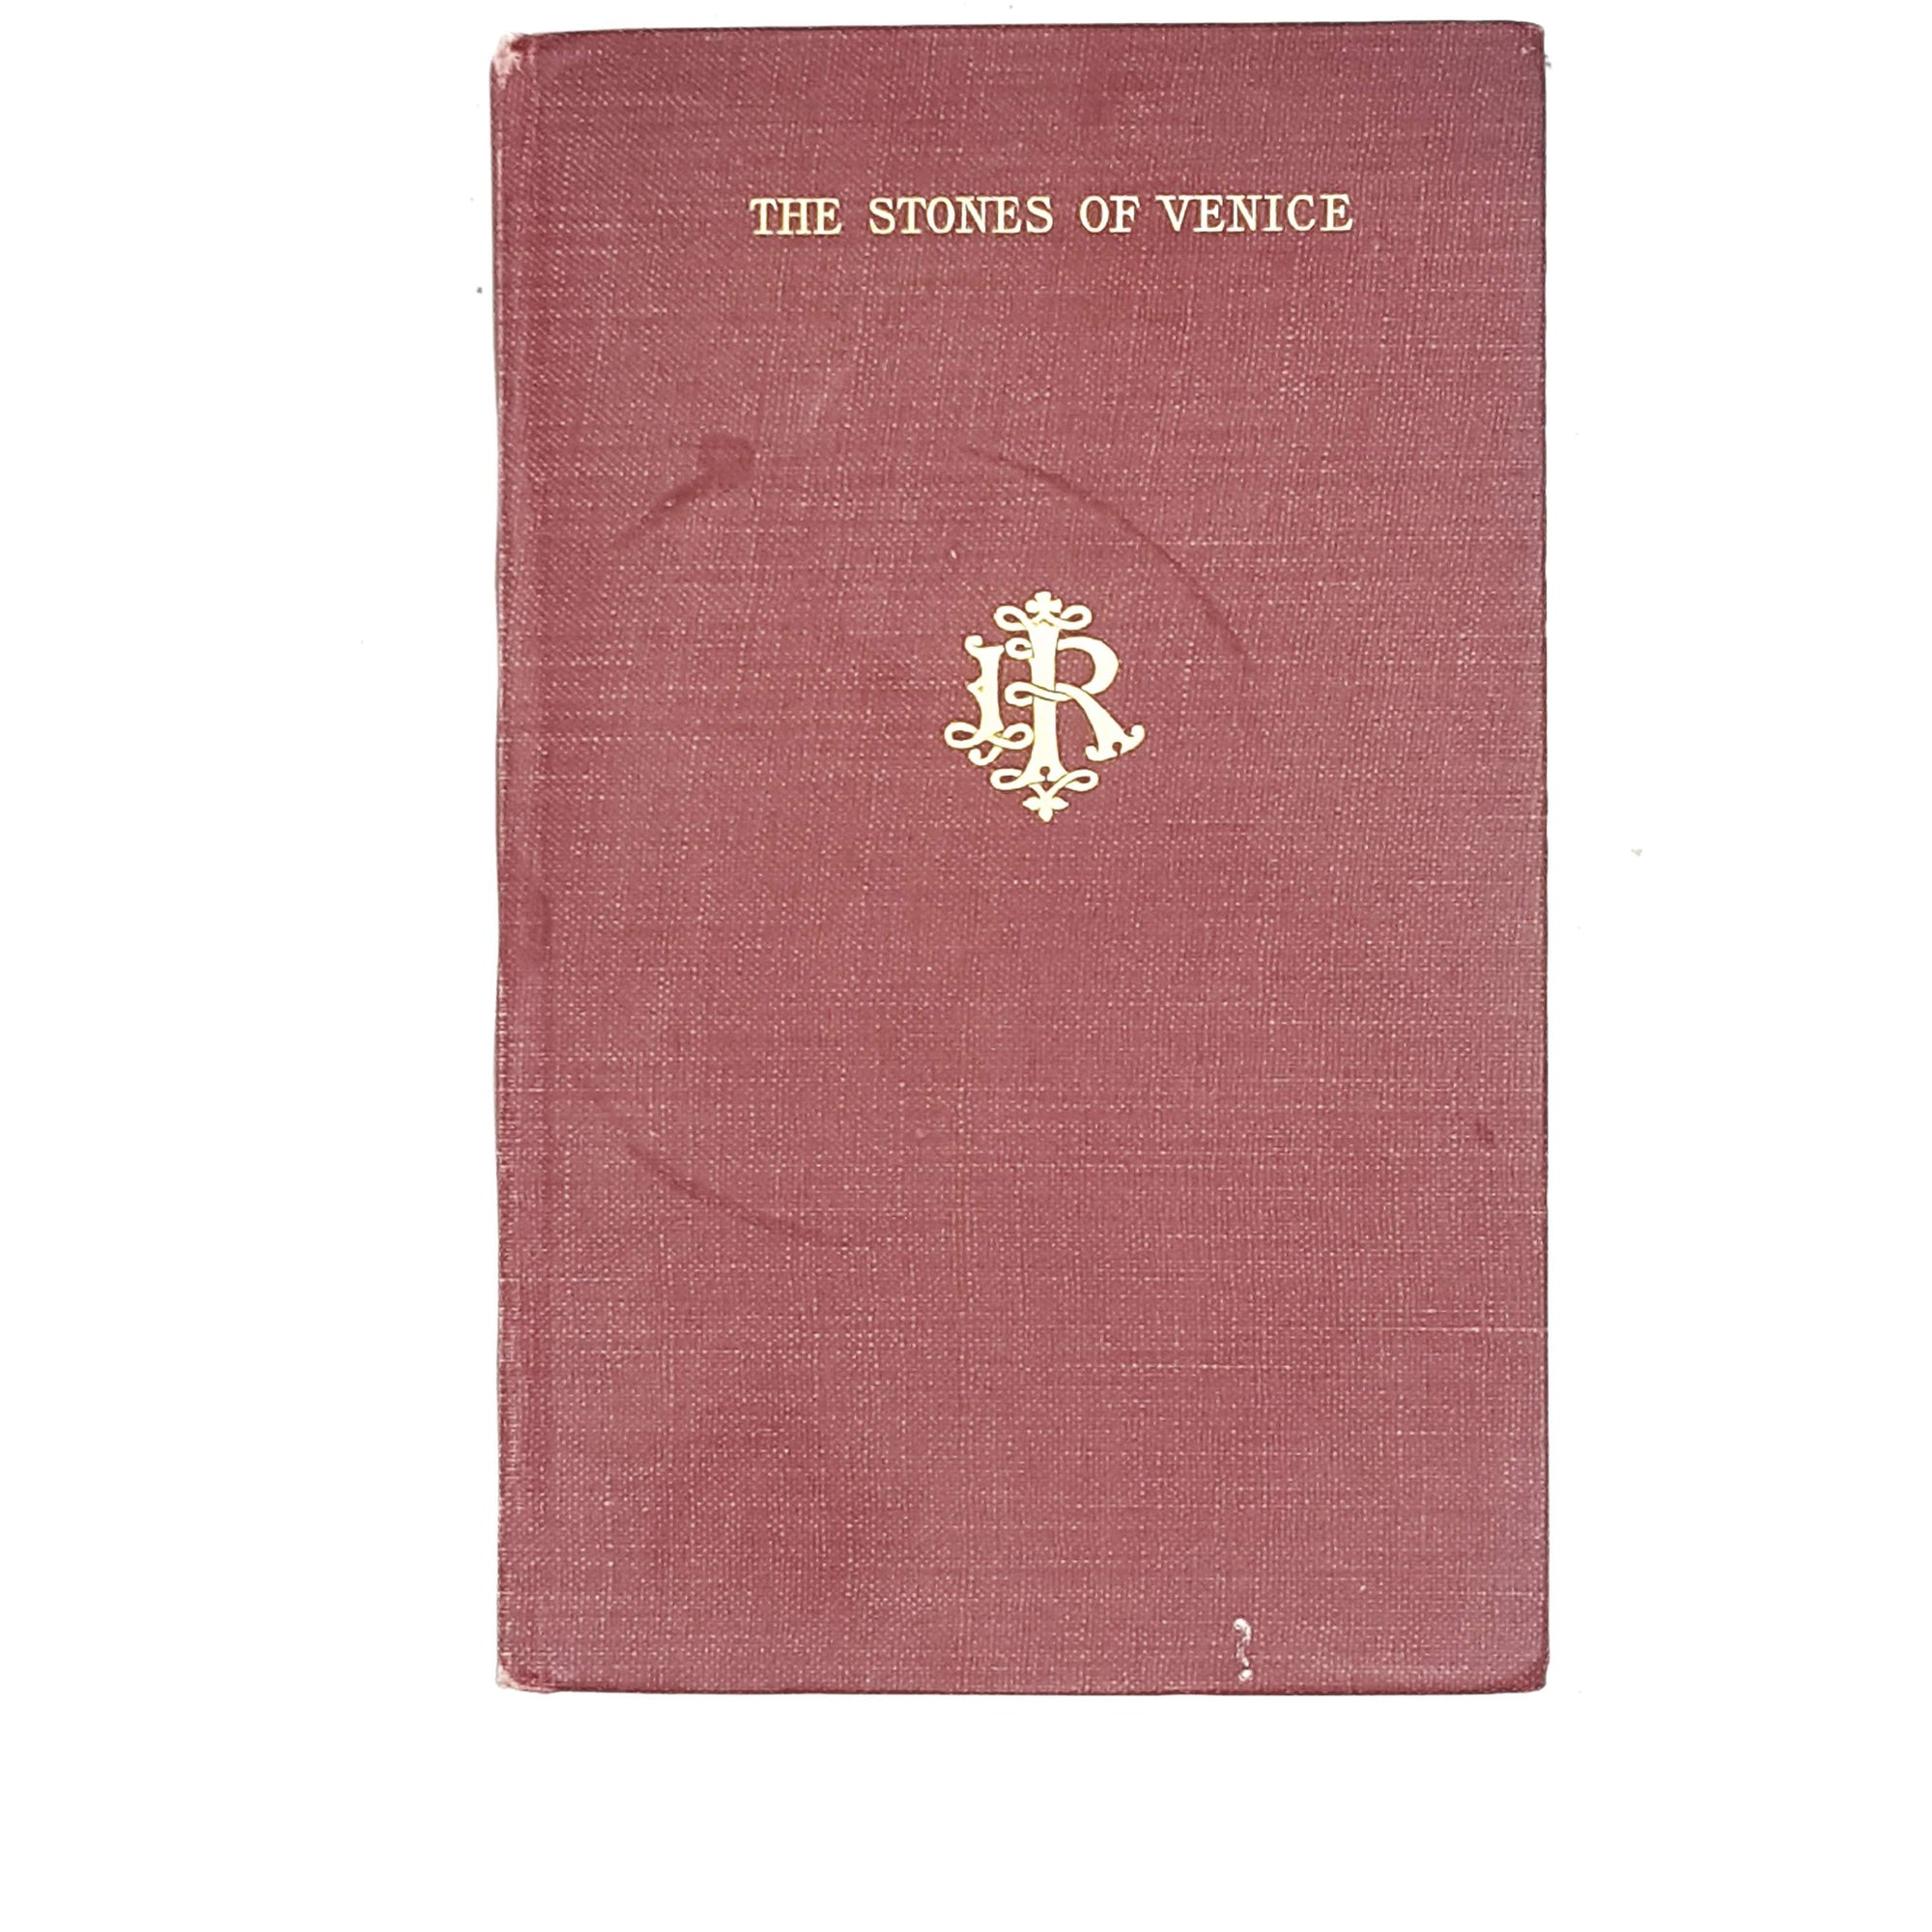 Illustrated The Stones of Venice: The Foundations by John Ruskin 1906